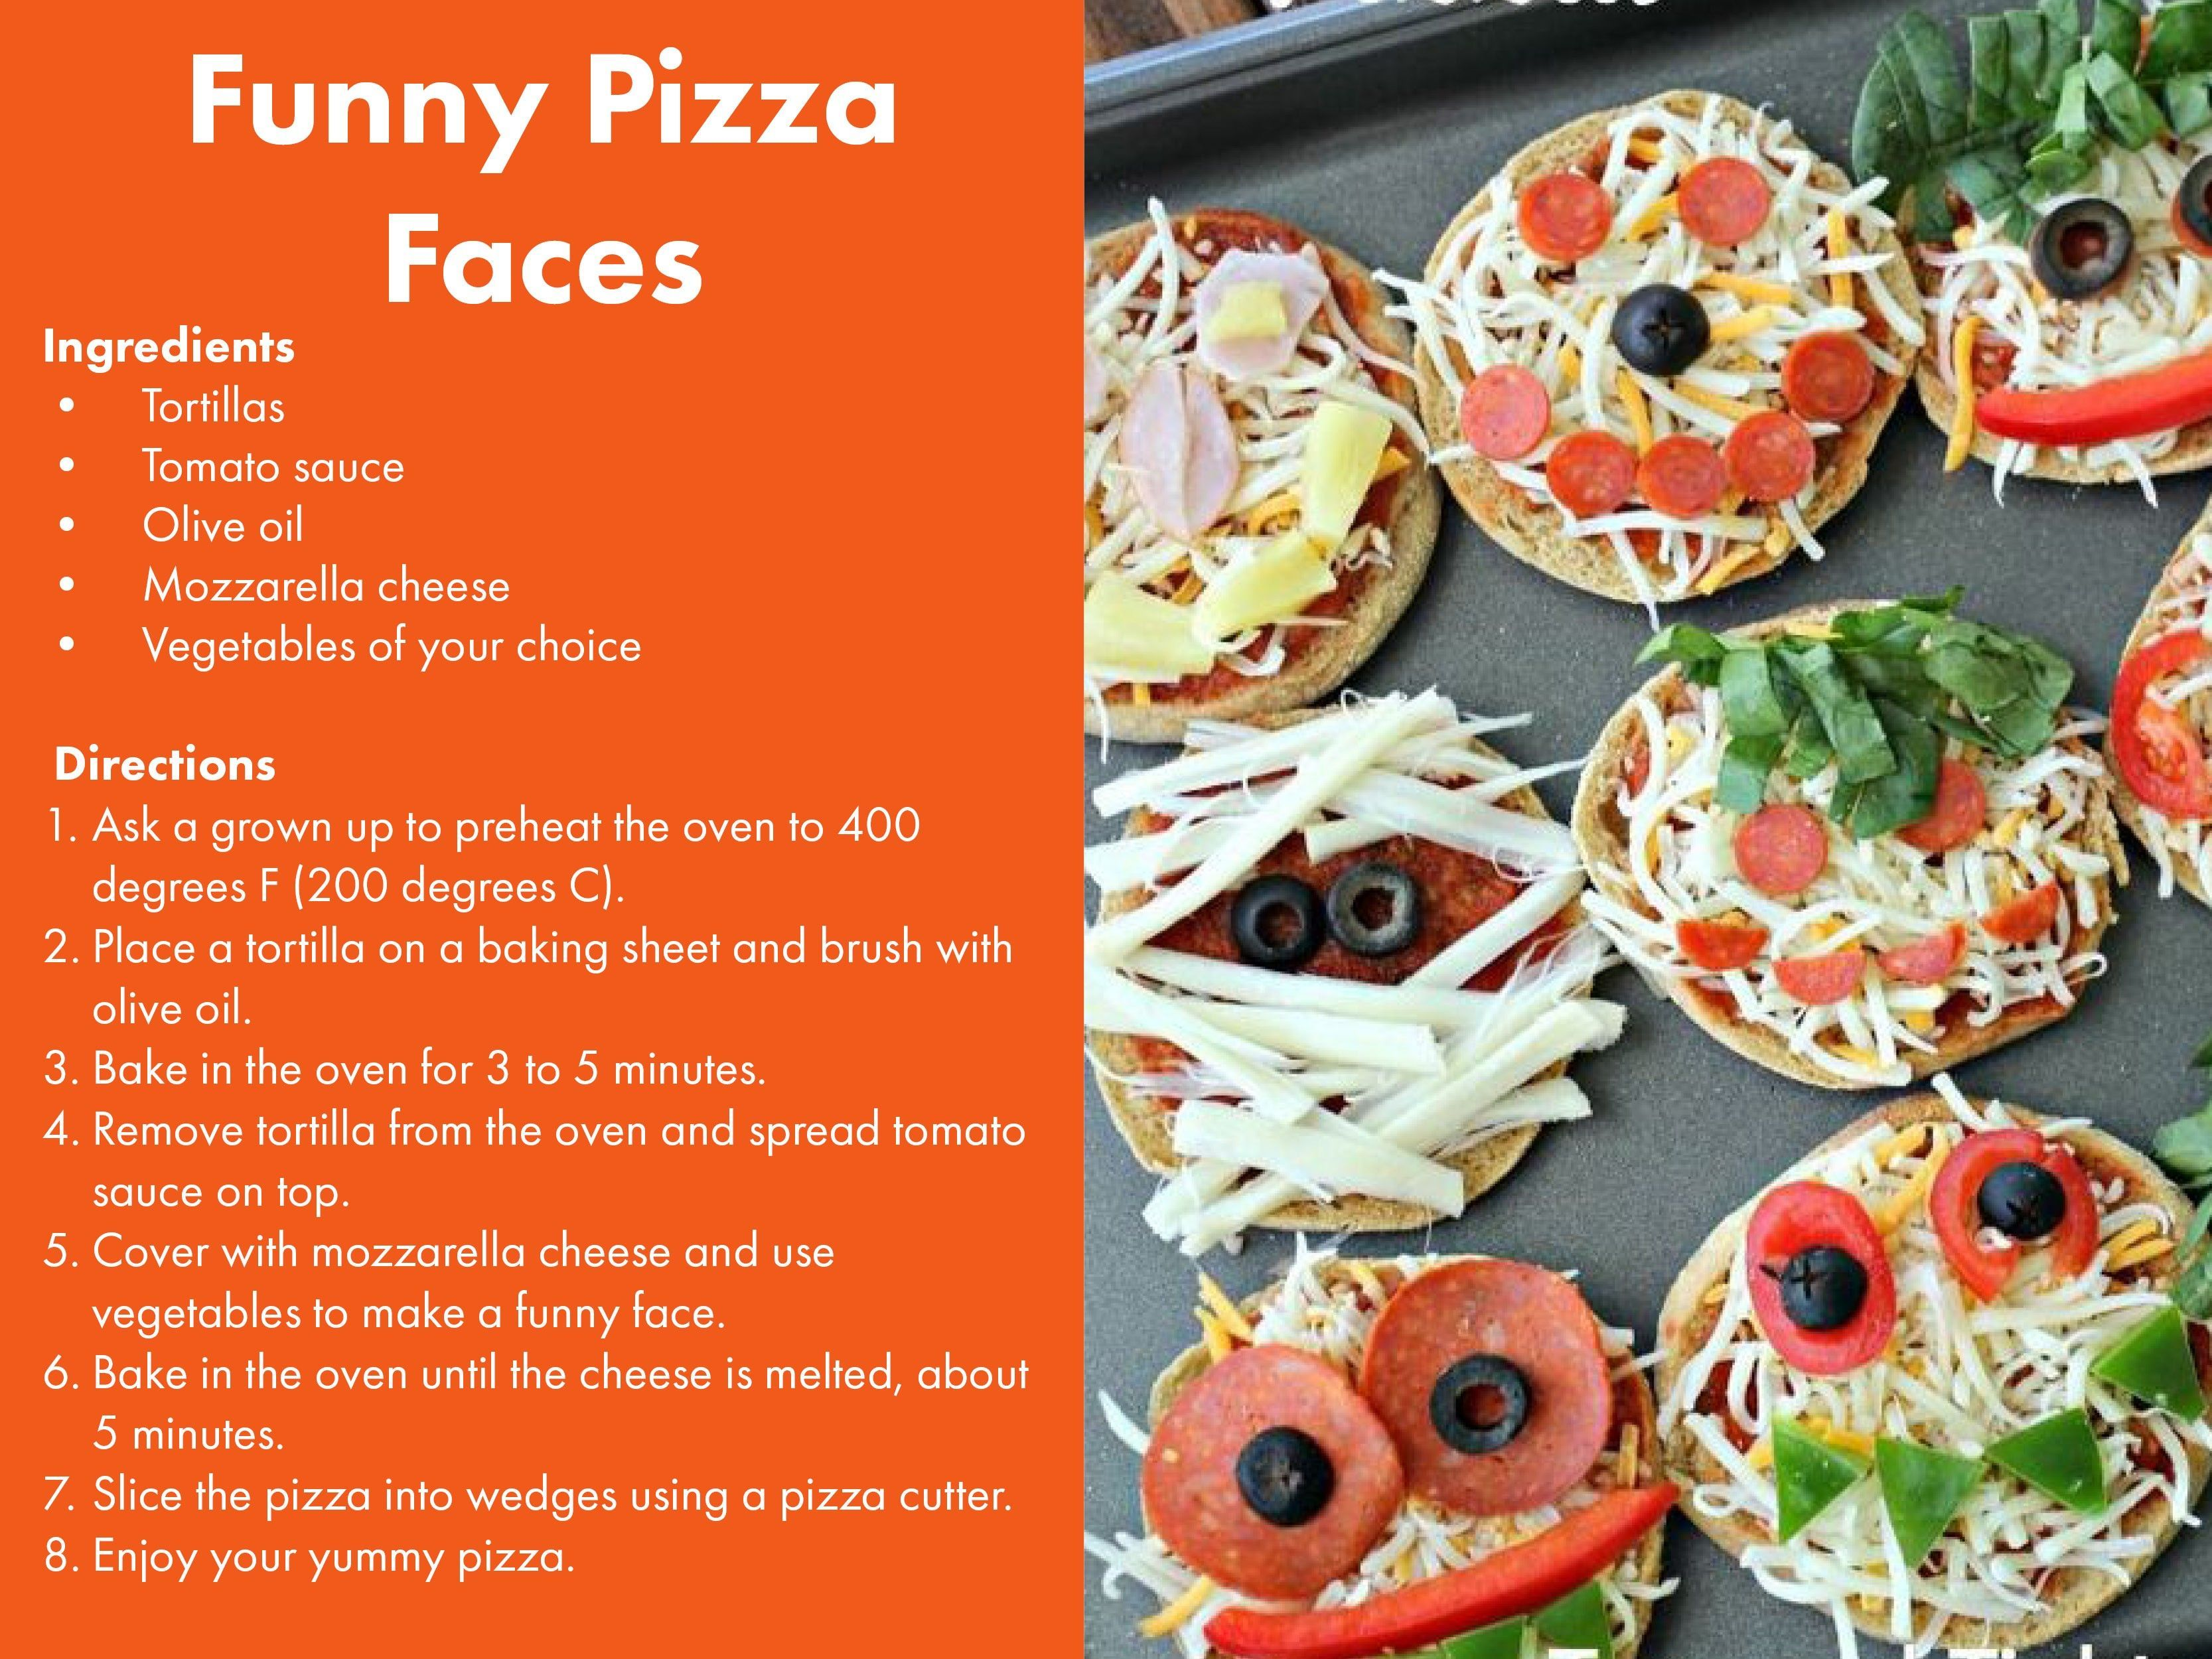 Funny Pizza Faces